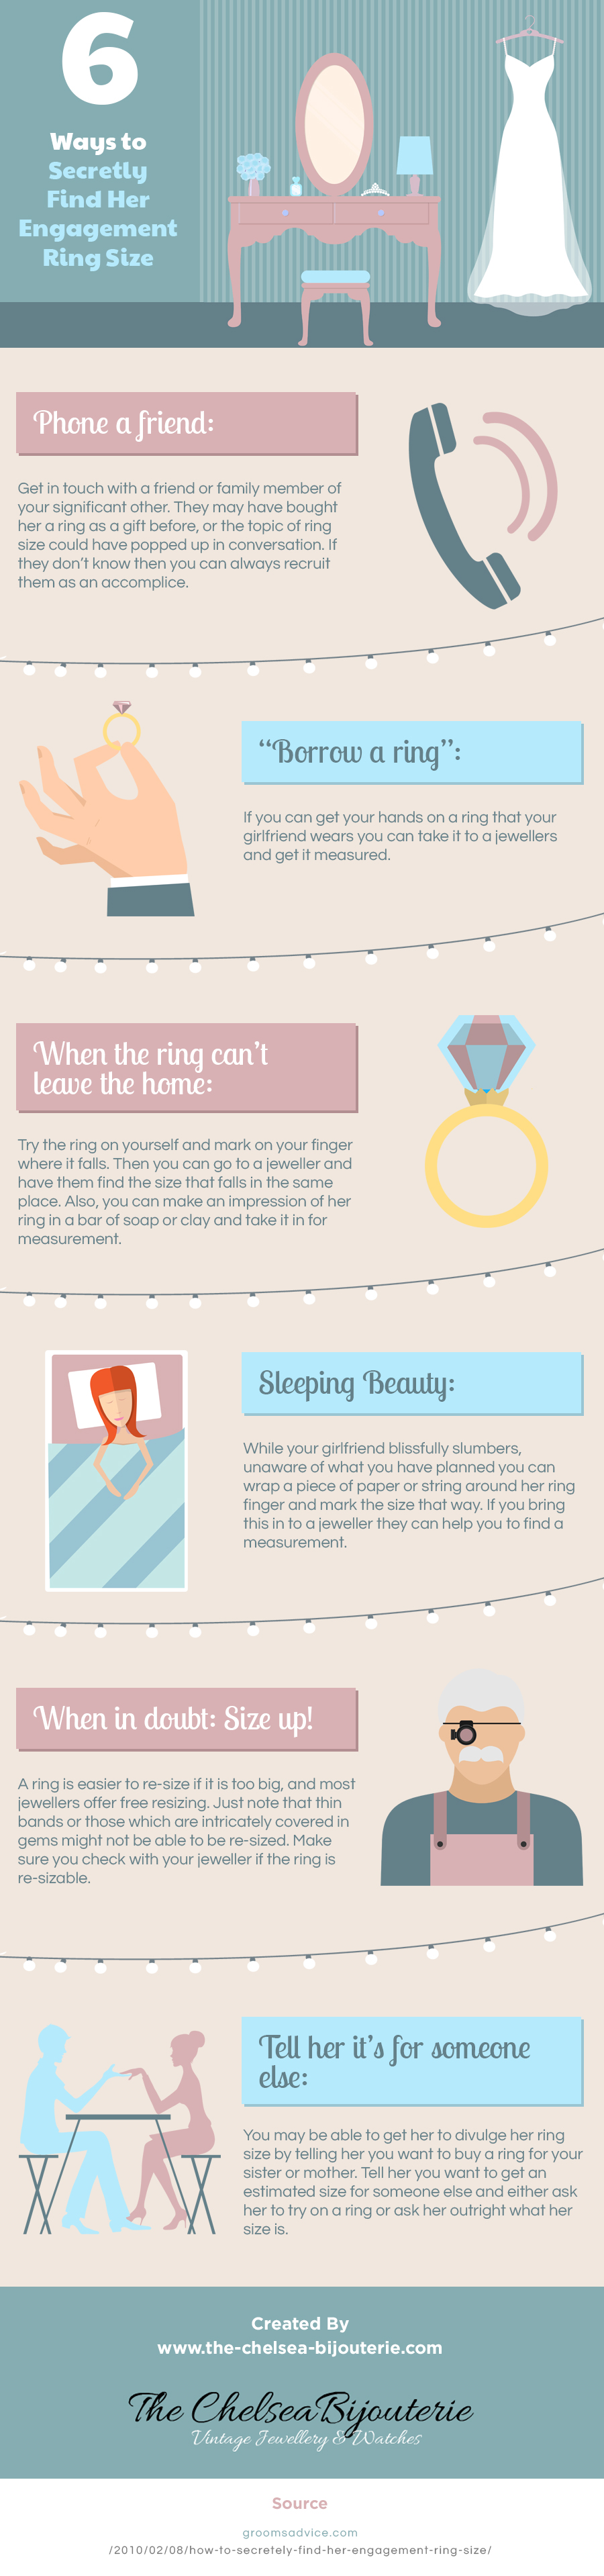 6 Ways to Secretly Find Her Engagement Ring Size